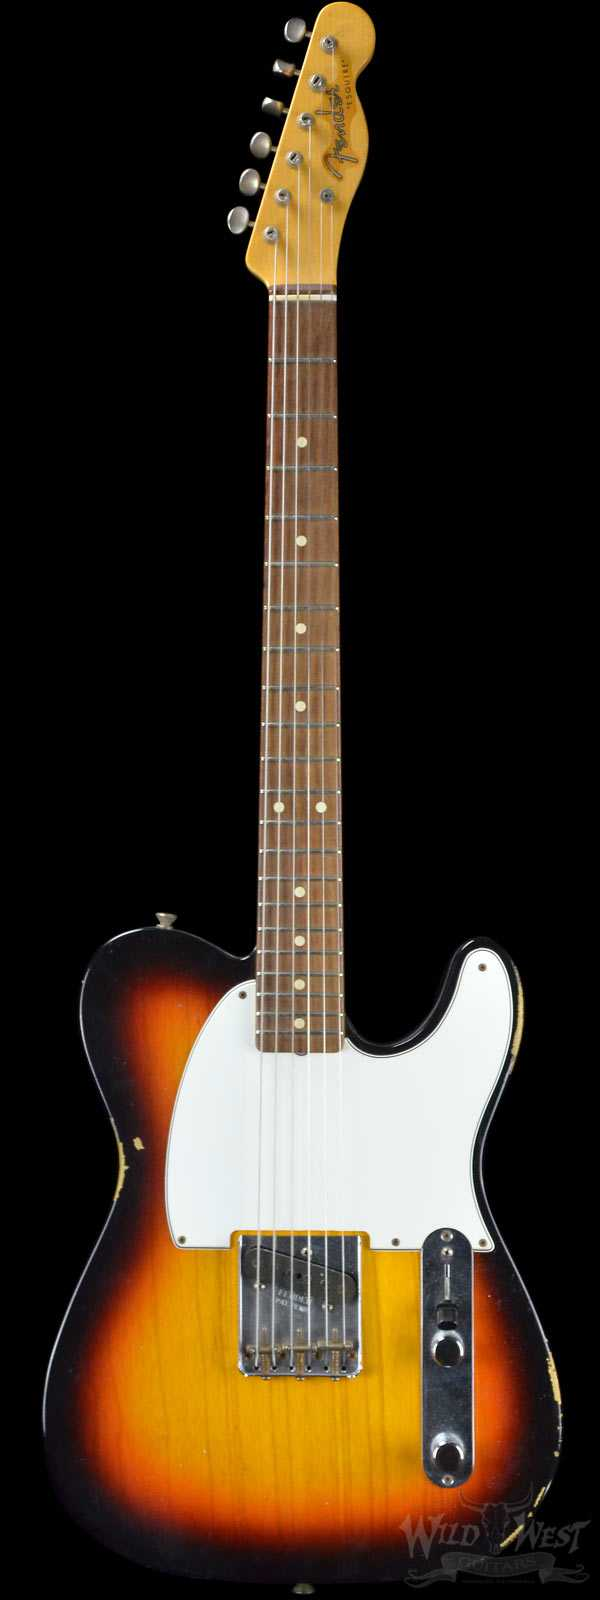 2013 Fender Custom Shop 1959 Relic Esquire Ash Body 3 Tone Sunburst